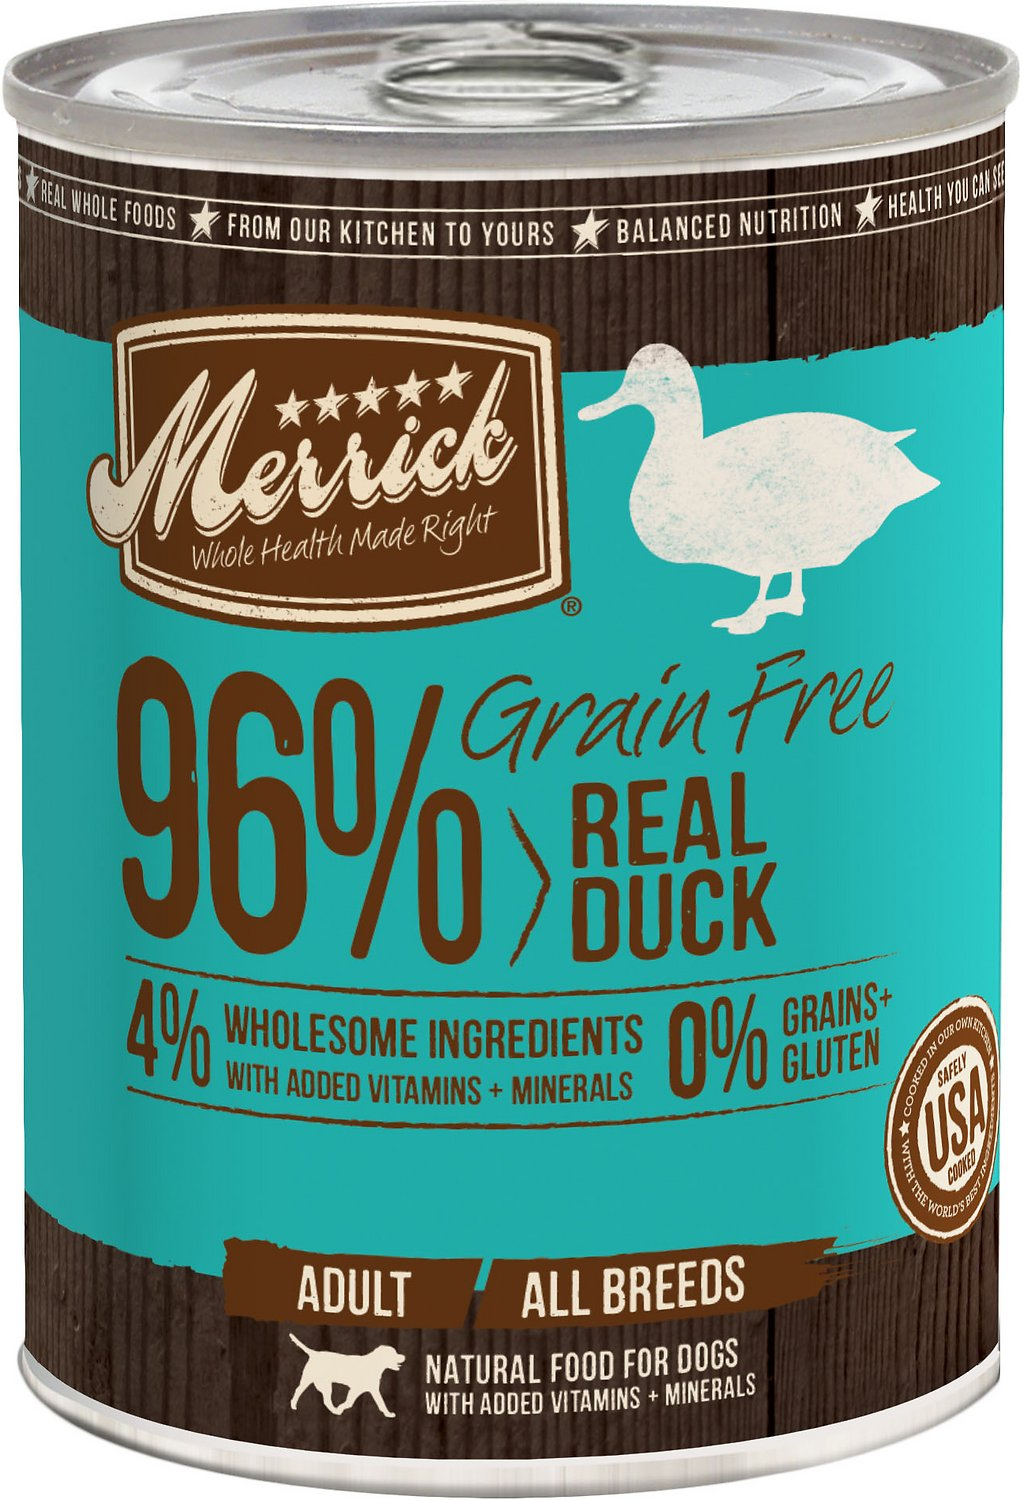 Merrick Grain-Free Real Duck Canned Dog Food Image